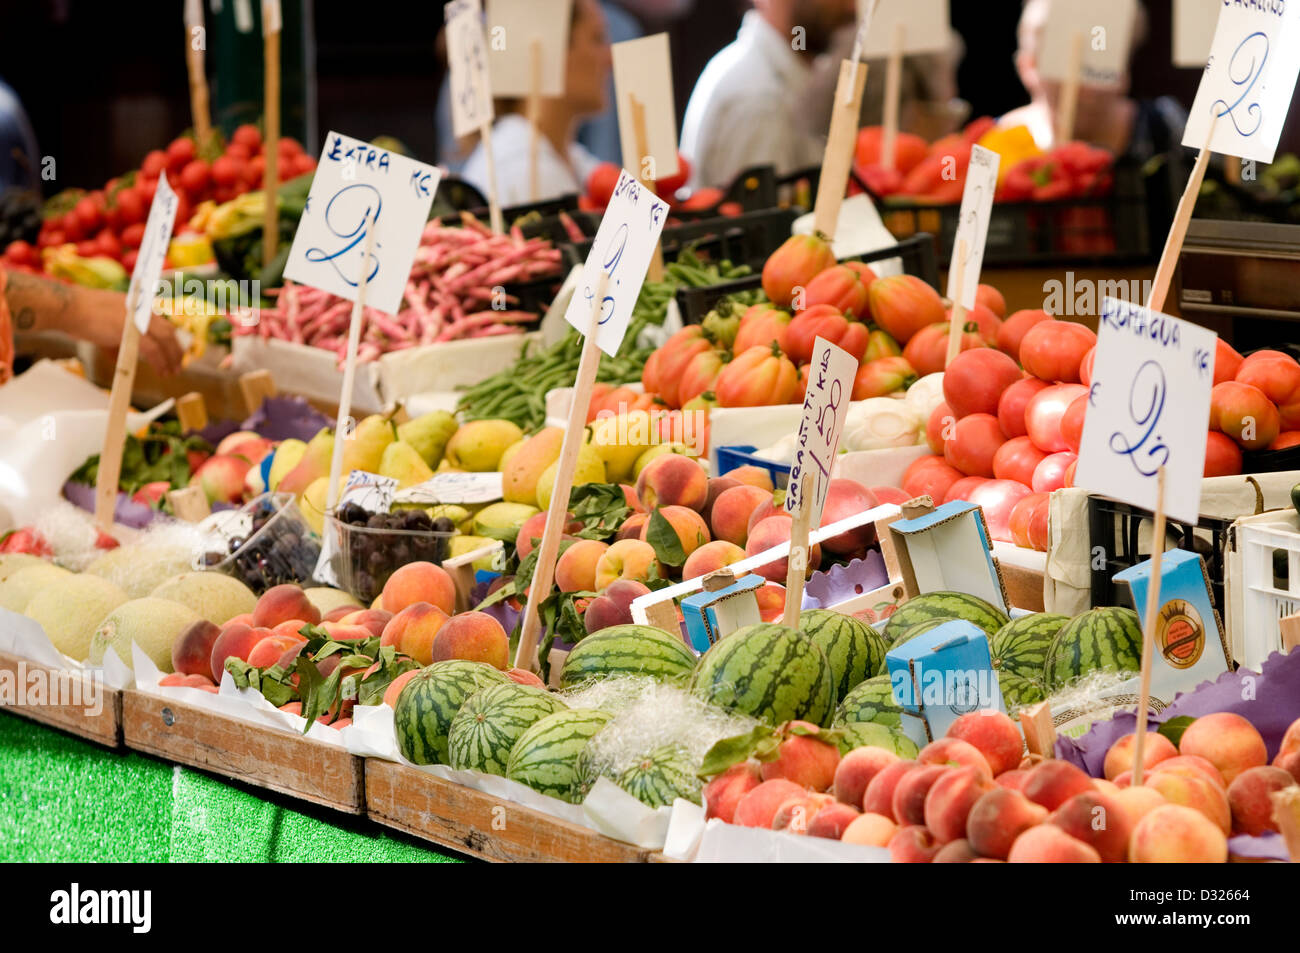 Fruit, vegetables, and customers at the Mercato di Rialto, San Polo, Venice, Italy. - Stock Image